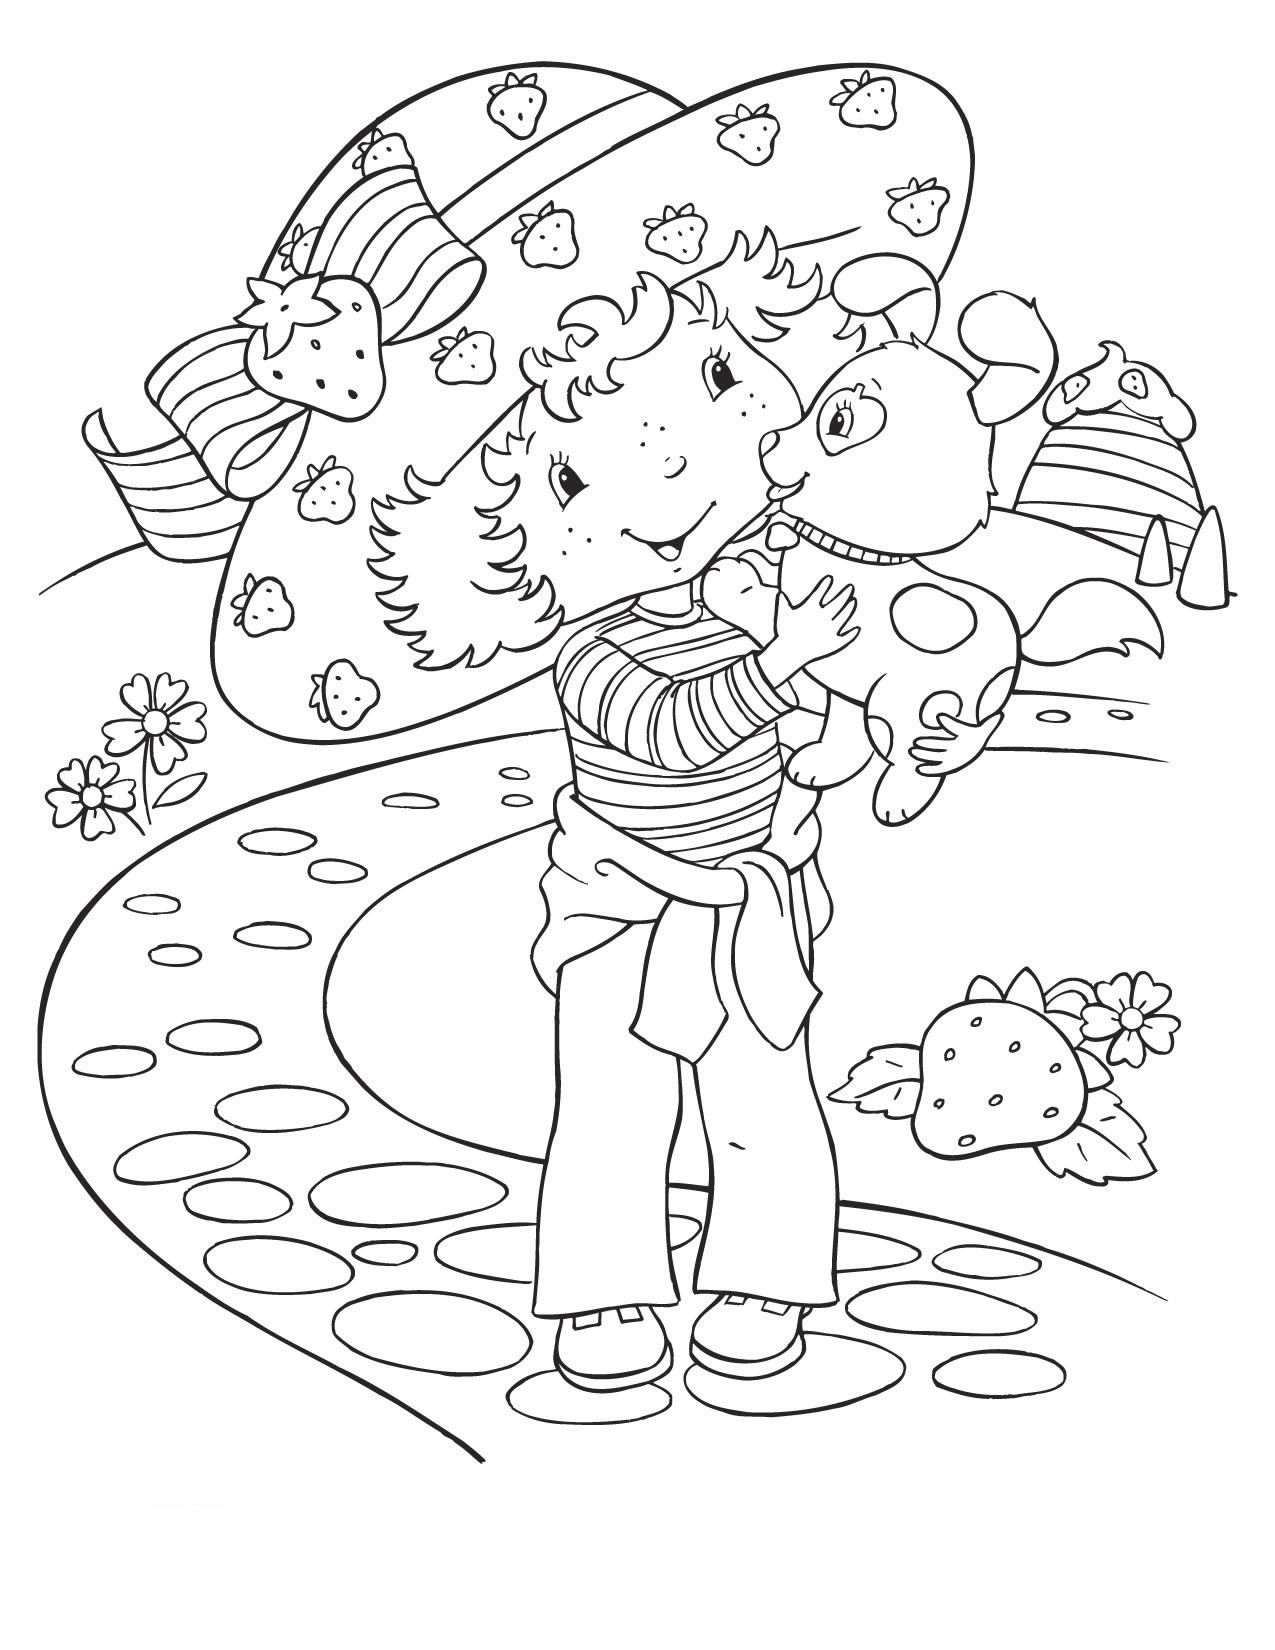 Coloring Pages Strawberry Shortcake And Friends | Places to Visit ...